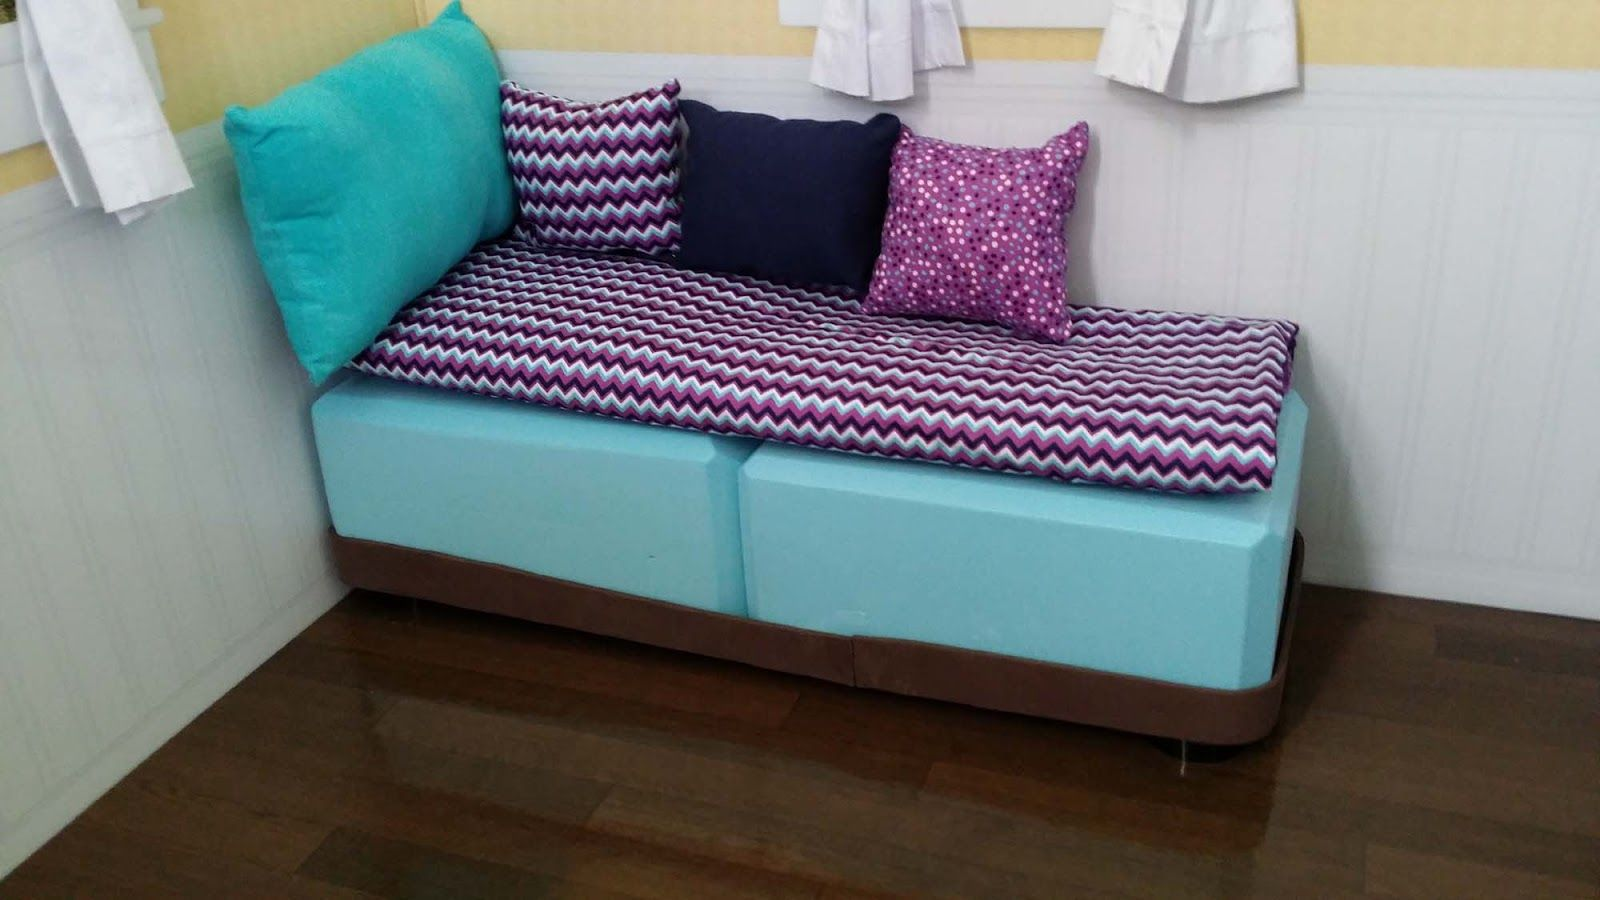 American Girl Doll Crafts and Fun!: Craft: Make a Doll Chaise Lounge ...